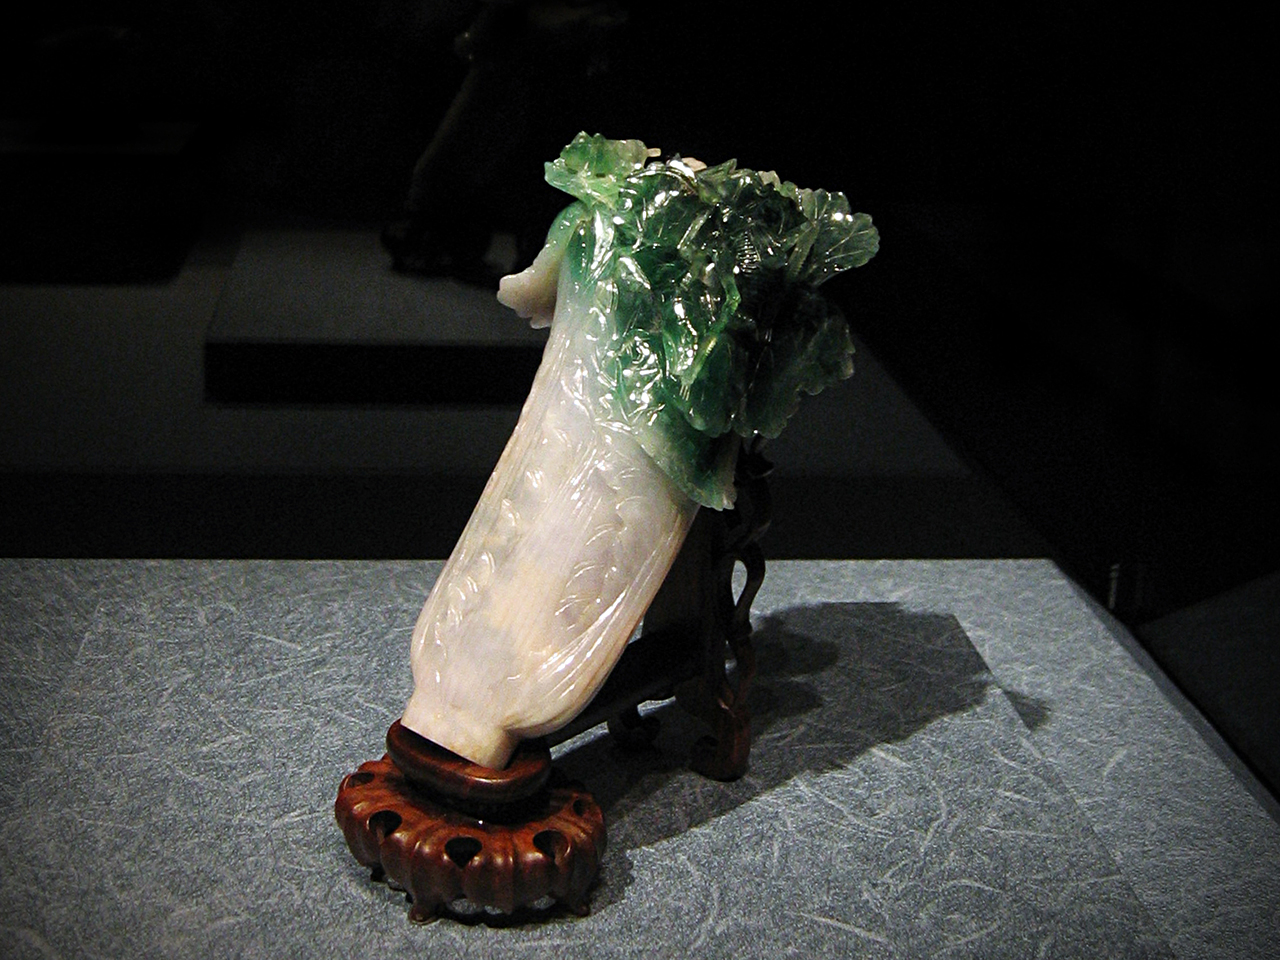 The jade cabbage. Apparently famous for how well the sculptor used the flaws and natural variations in the jade as assets to make the piece more lifelike.